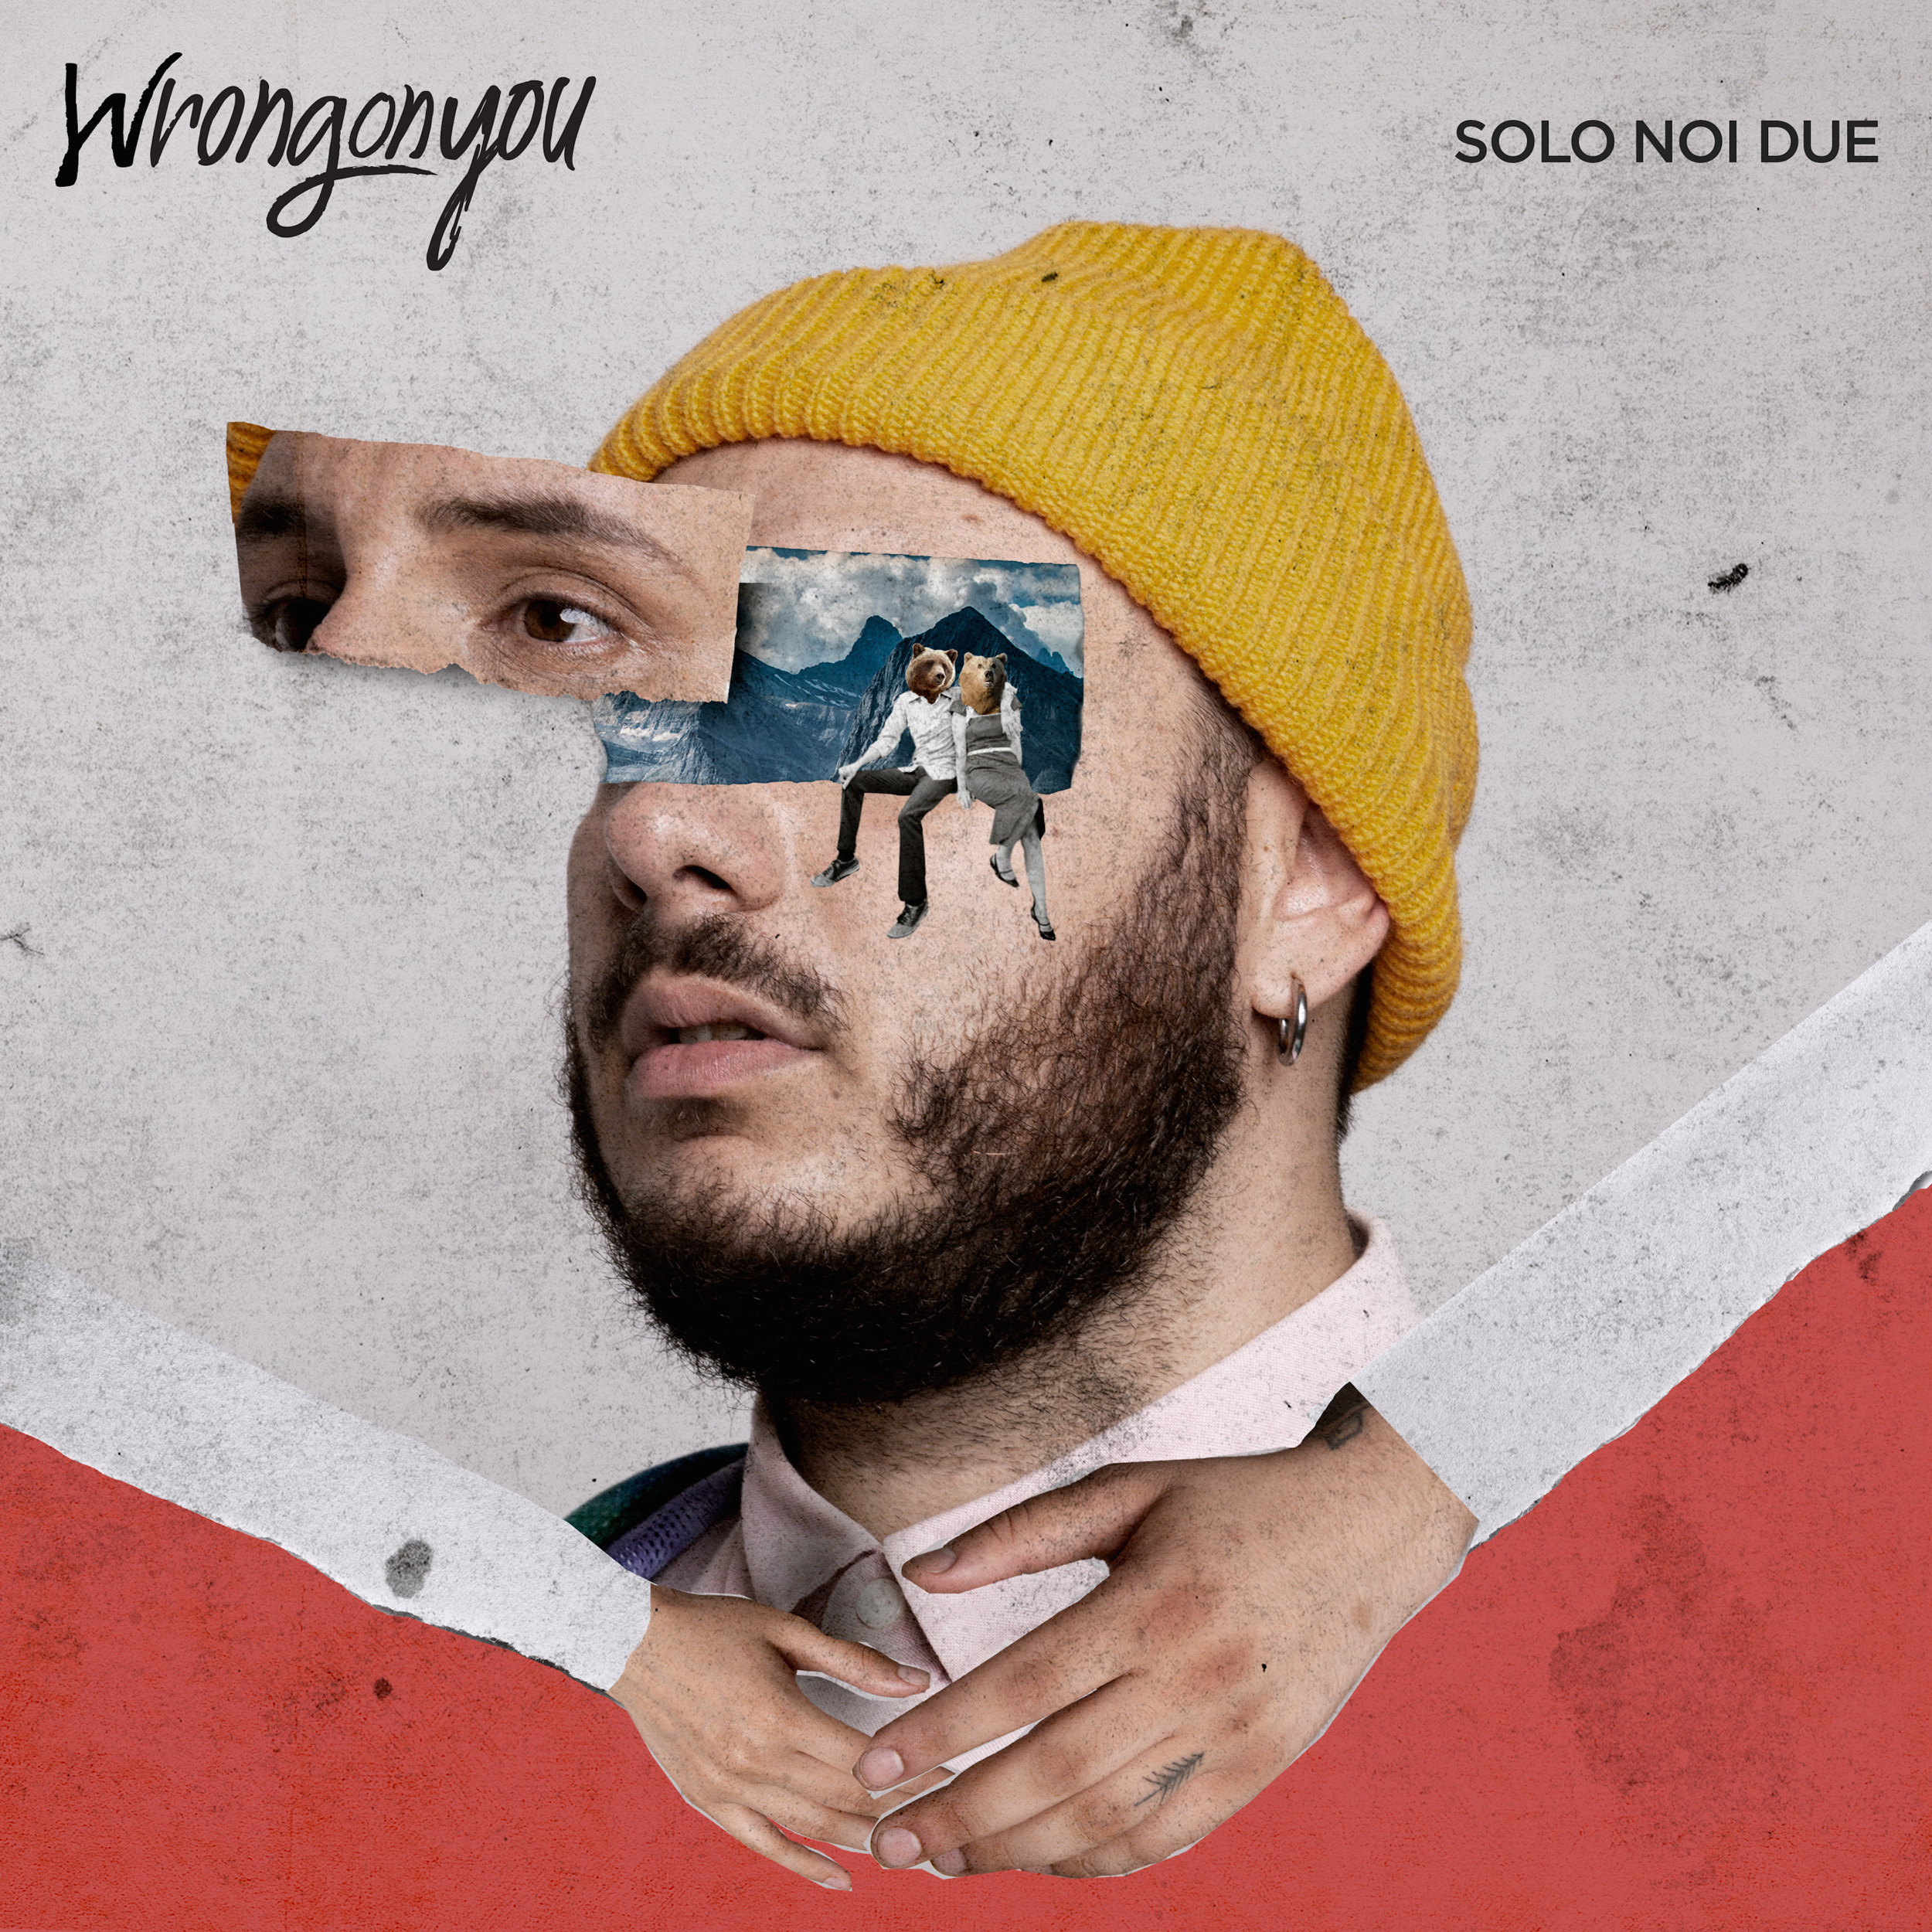 Wrongonyou - Solo noi due - COVER